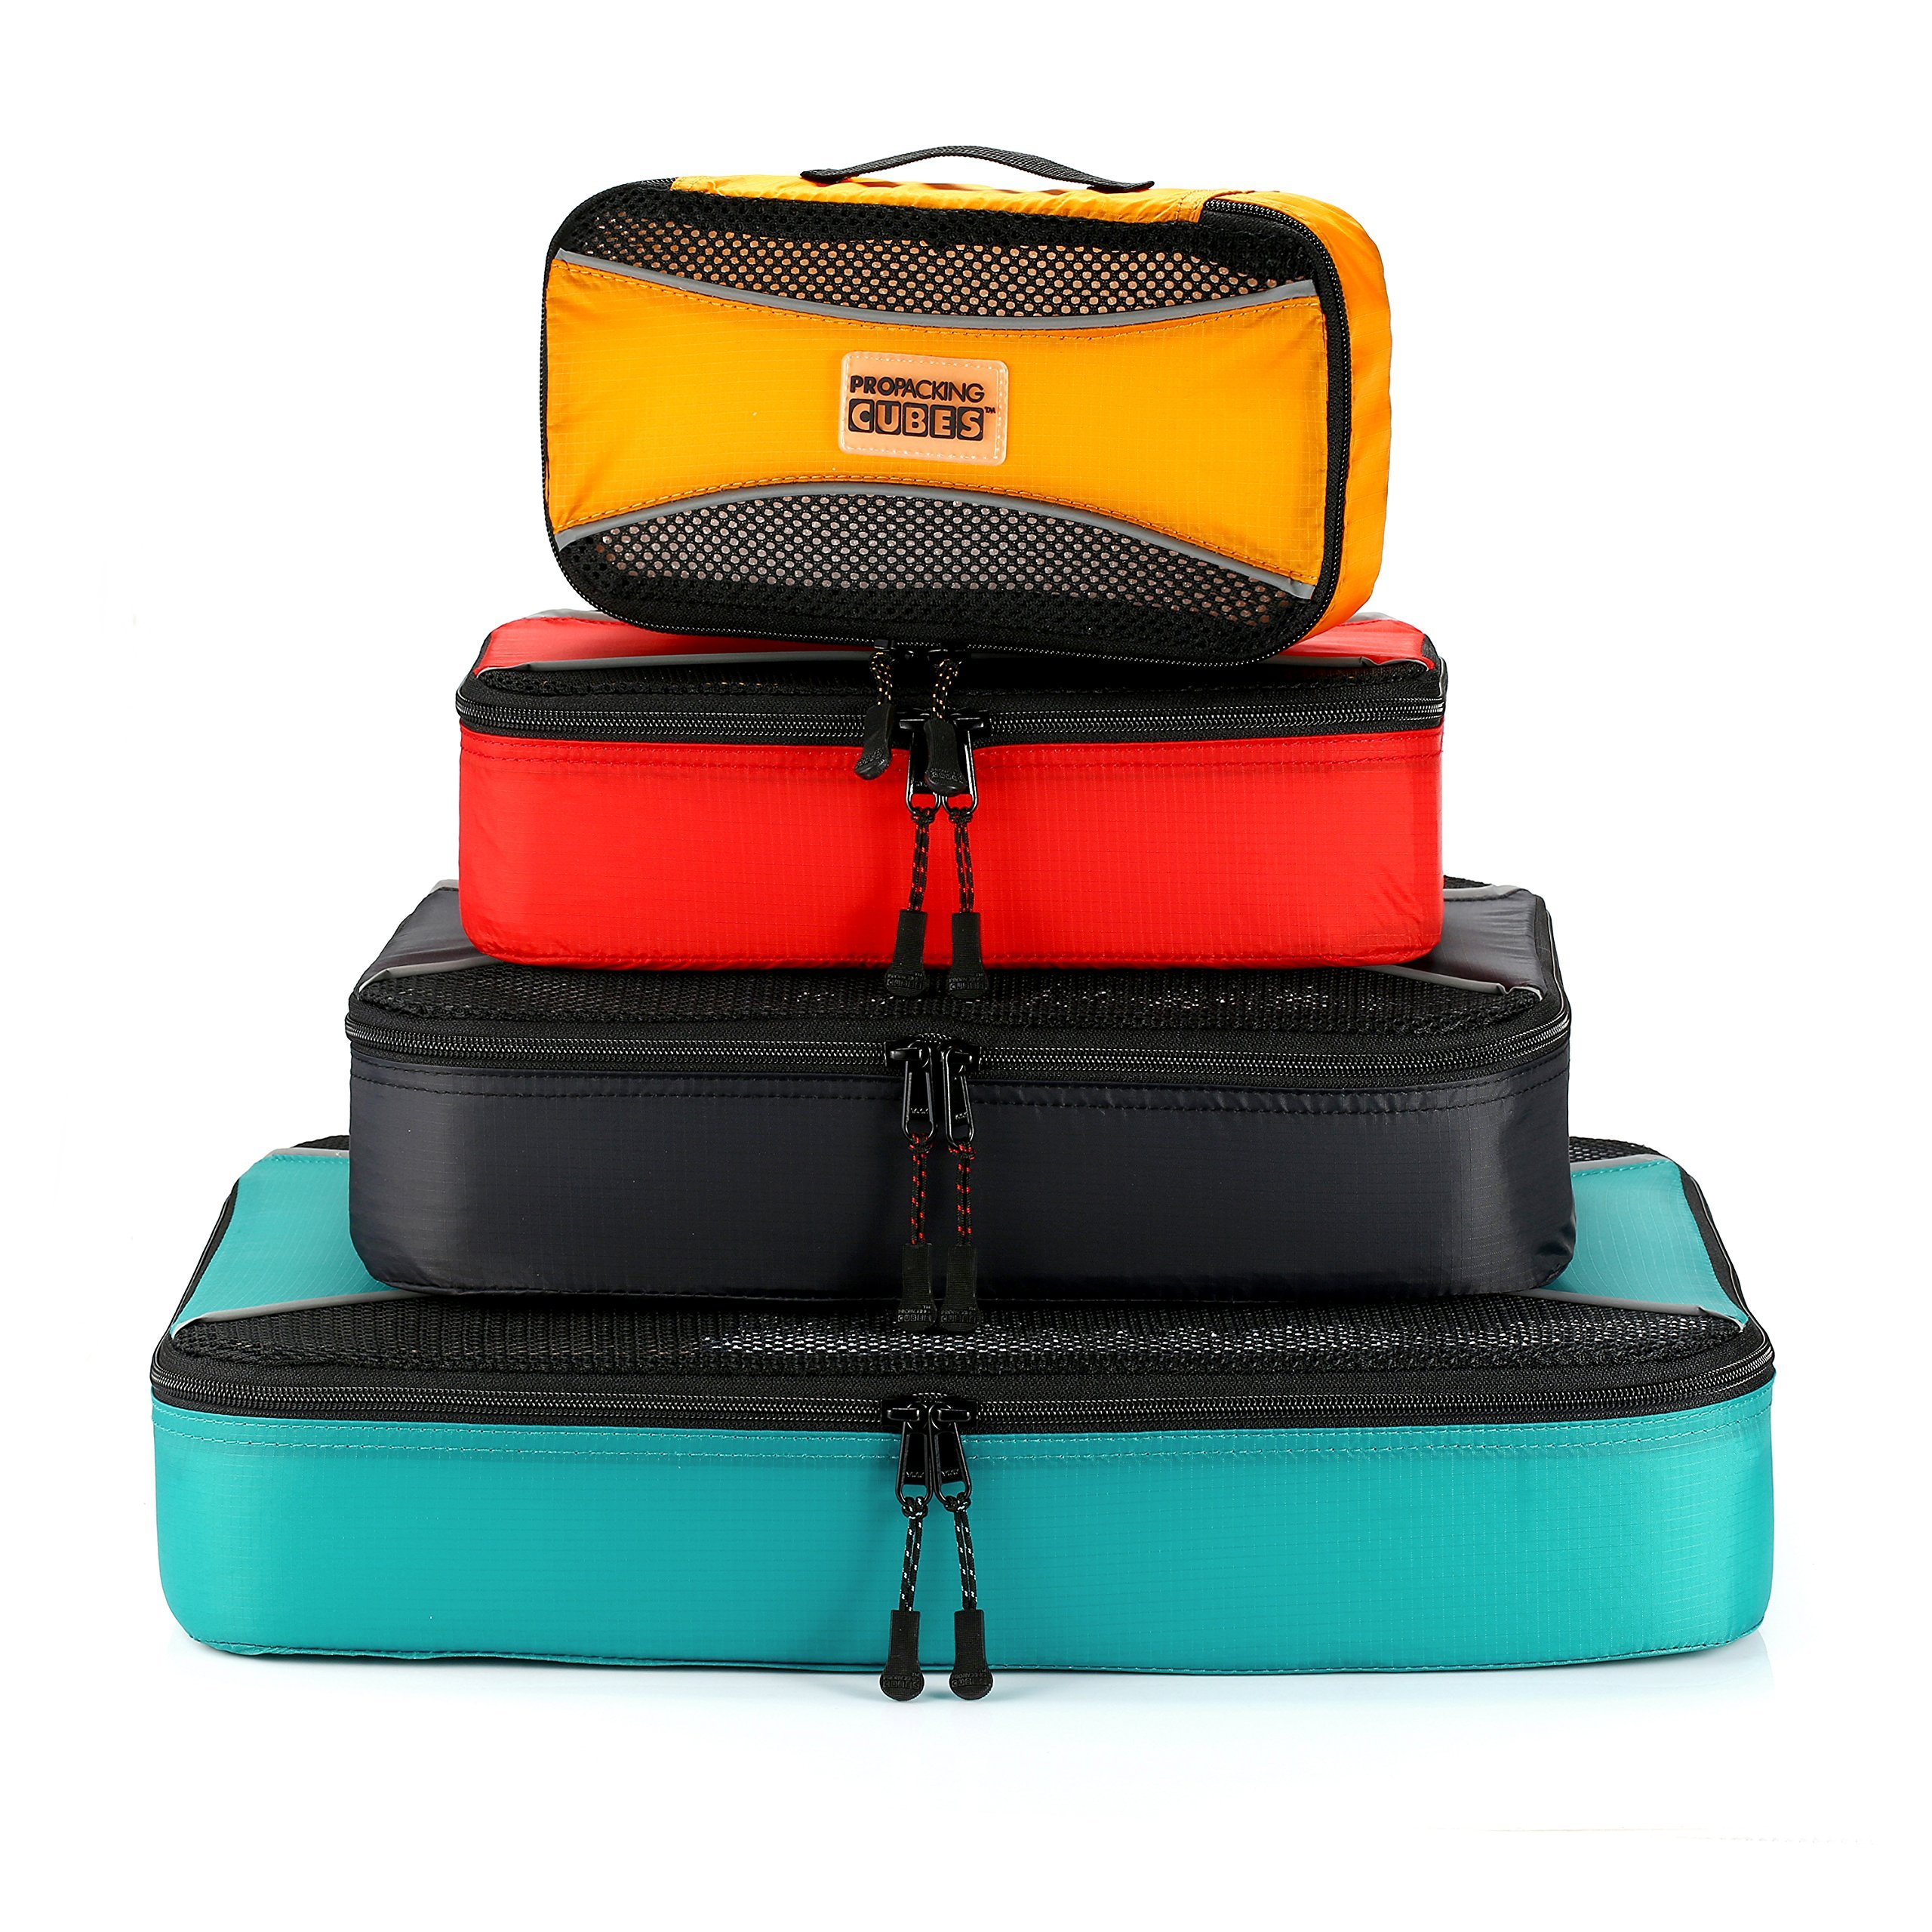 PRO Packing Cubes  Lightweight Travel - Packing for Carry-on Luggage, Suitcase and Backpacking Accessories Set, Mixed Colors - 4 Piece by Pro Packing Cubes (Image #3)